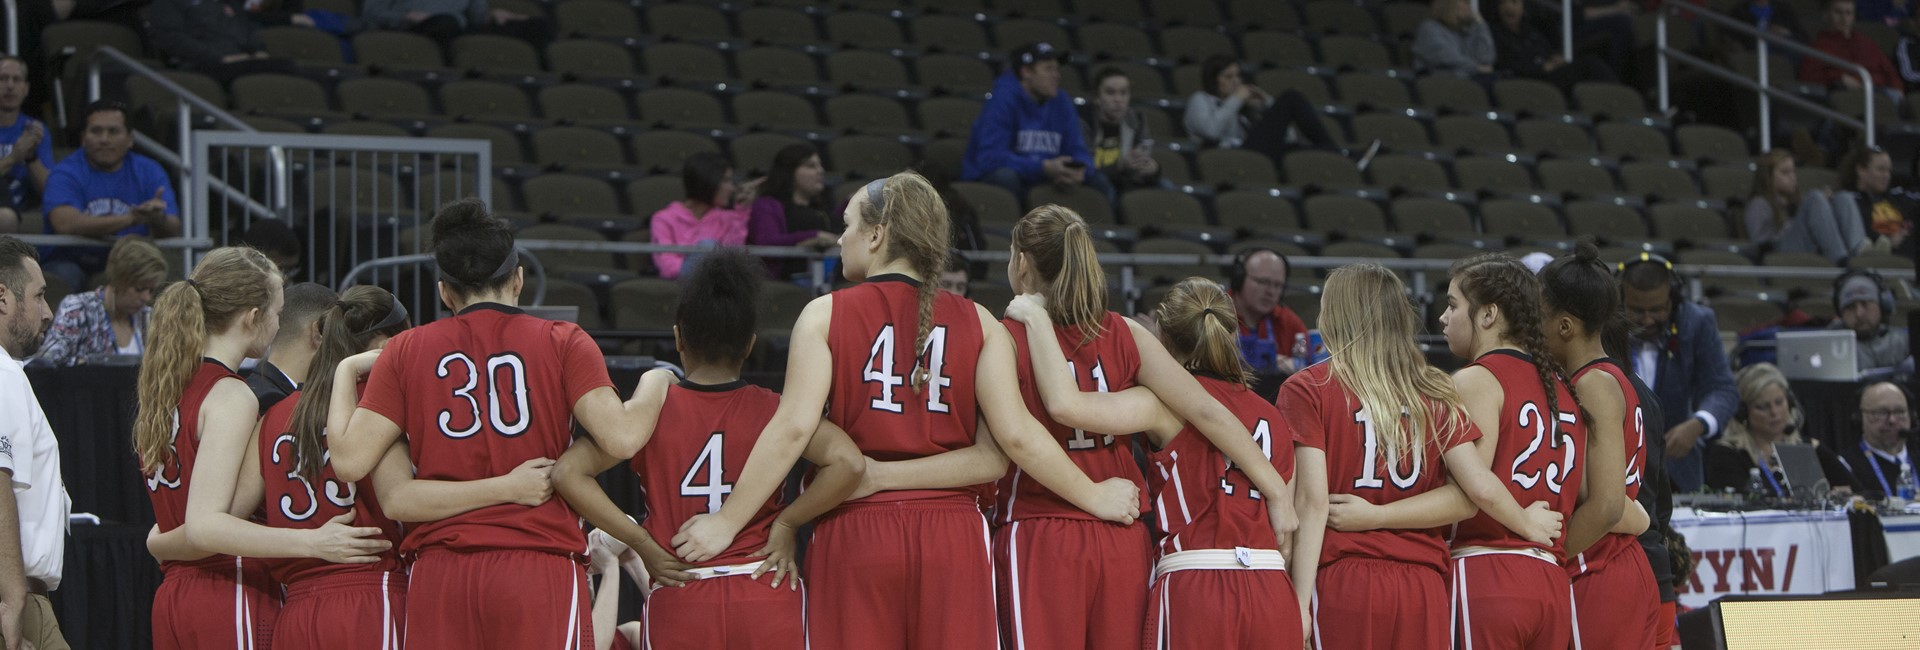 Lady Cards huddle during Sweet 16 basketball contest.